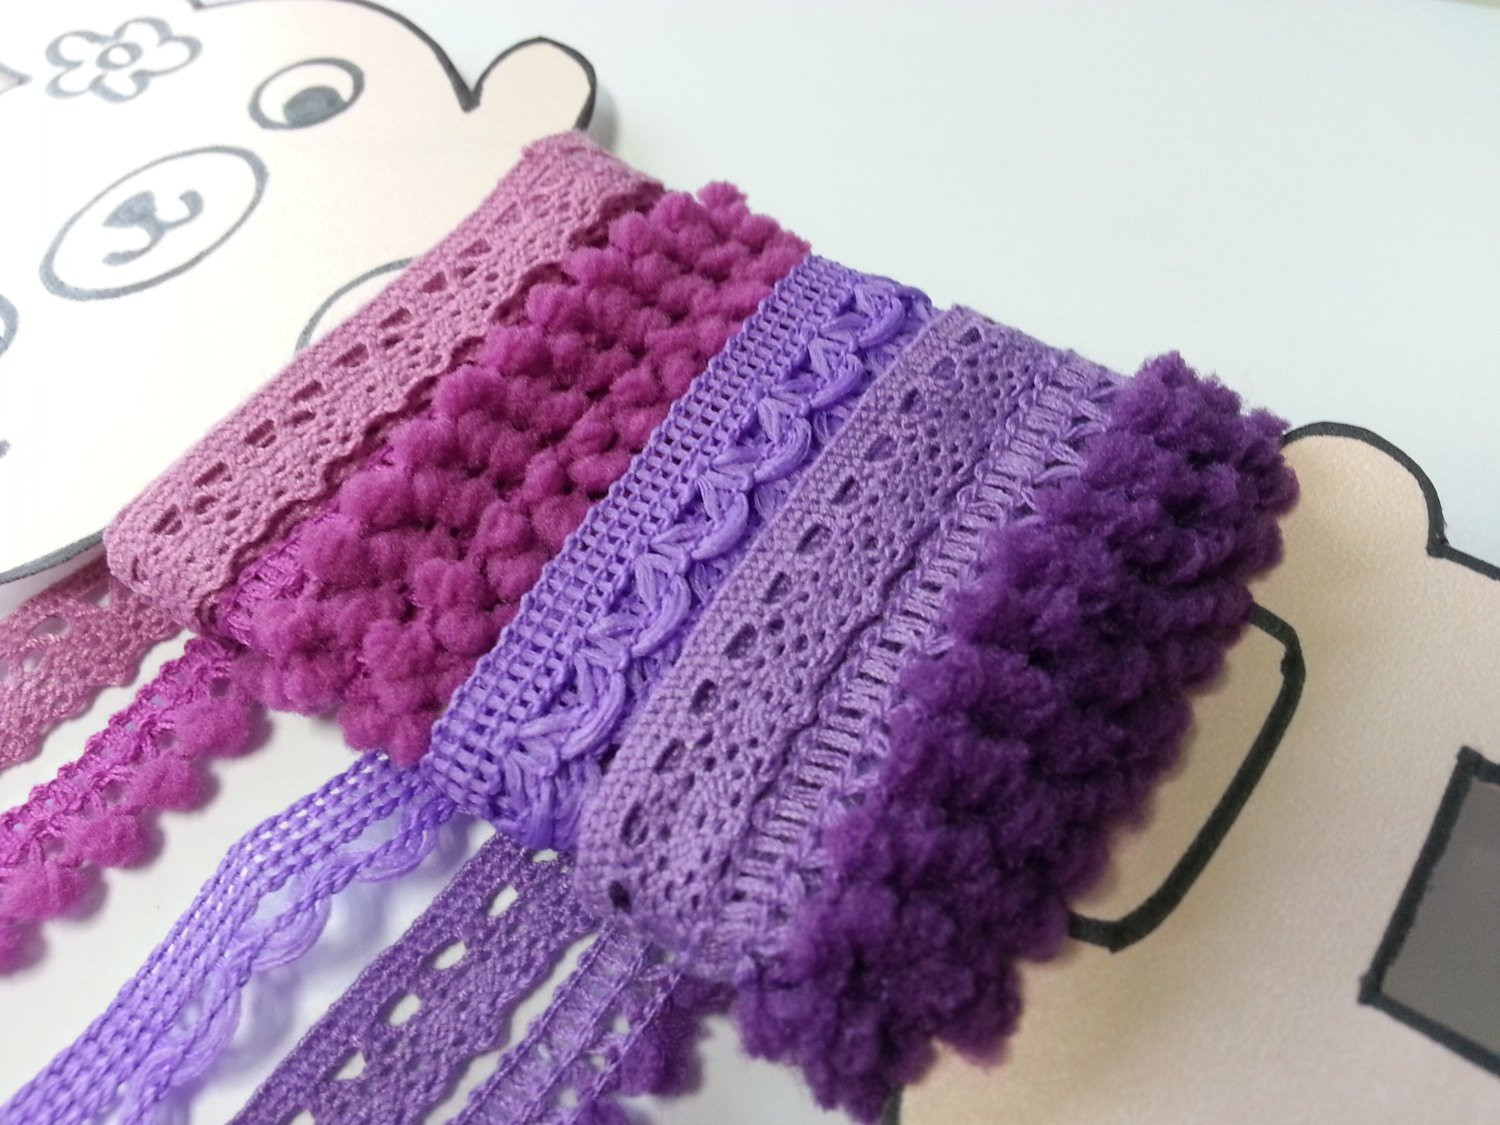 Crochet Lace Trimming Inspirational 5 Yards Purple Violet Trims Lace Trim Crochet Lace Trim Of Superb 50 Pics Crochet Lace Trimming